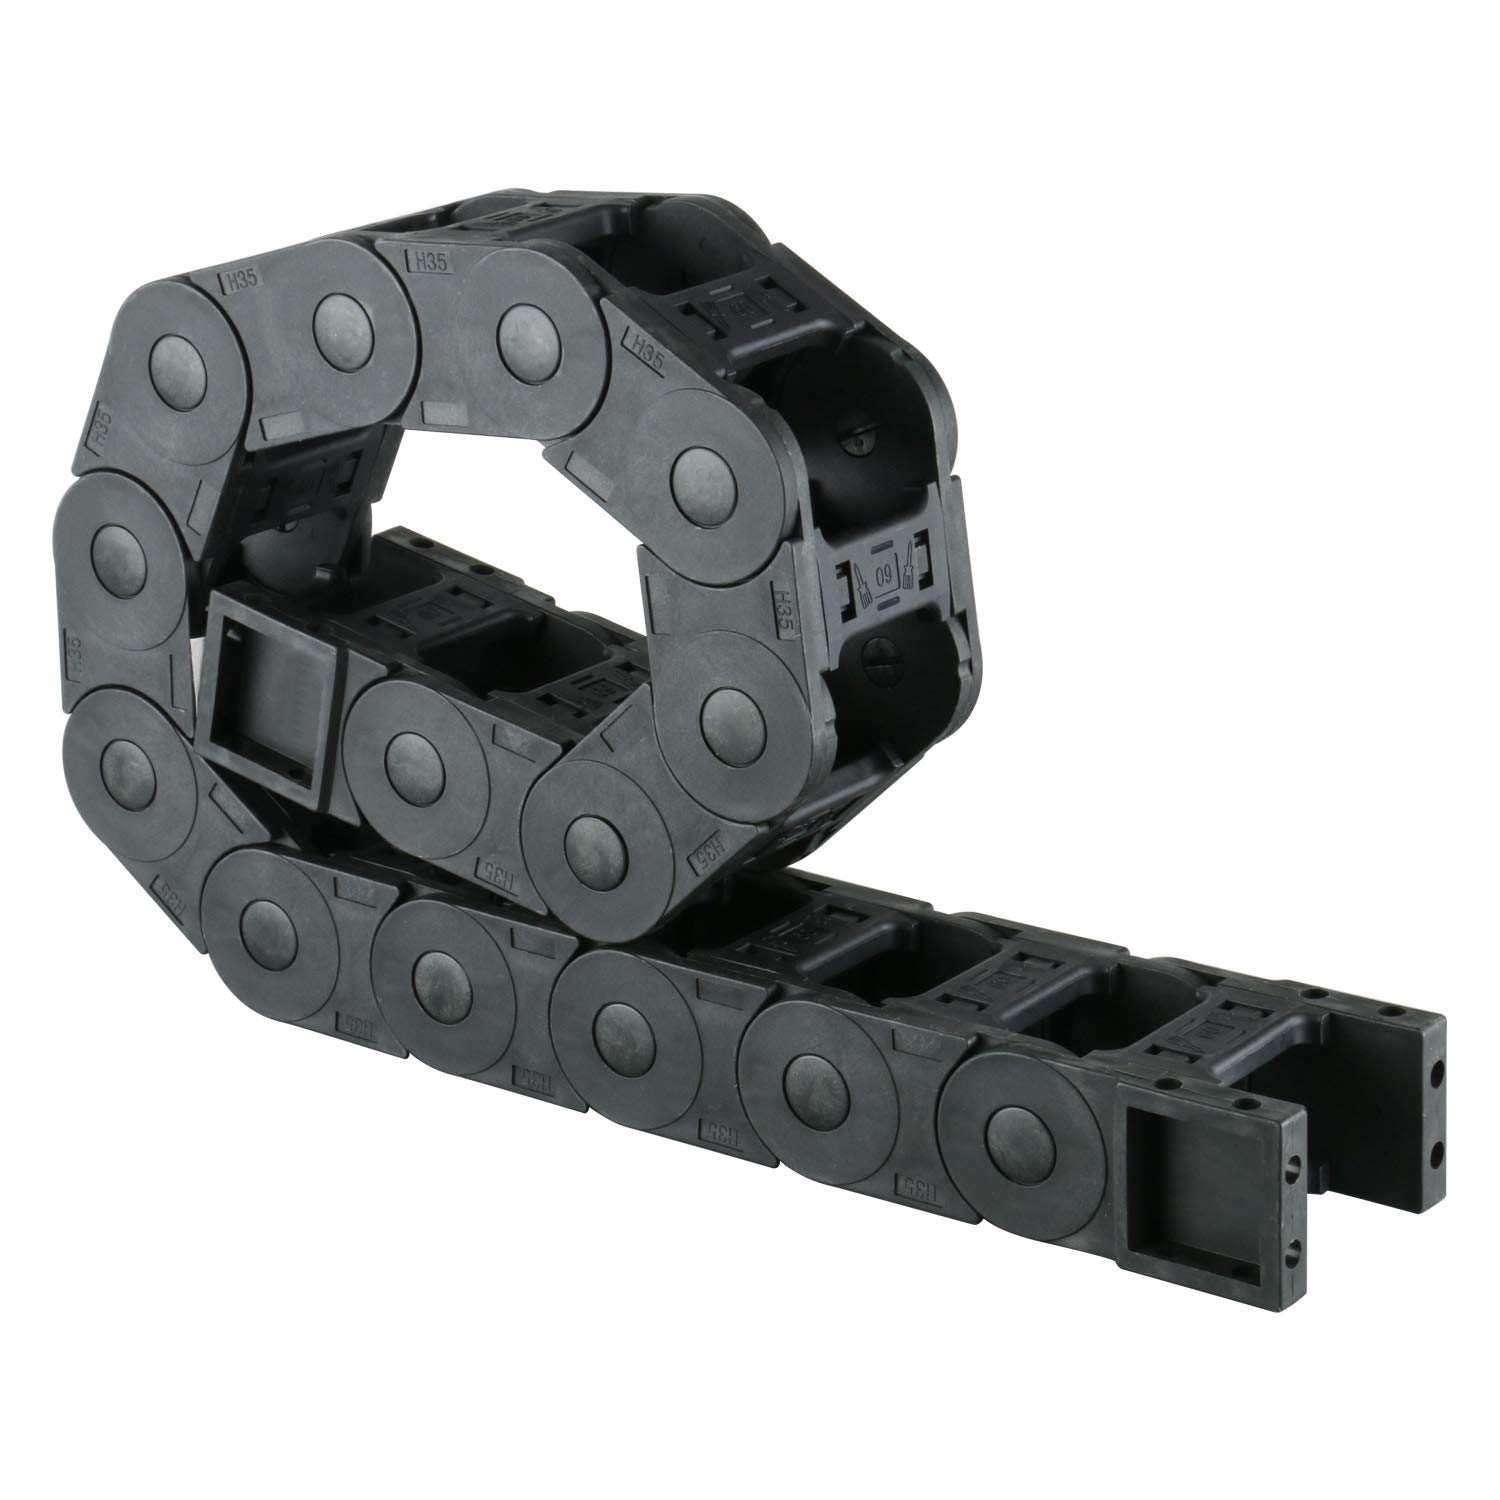 Plastic Drag Chain Cable Carrier Closed Type with End Connectors R100 35 x 60mm L1040mm for Electrical CNC Router Machines by YAETEK